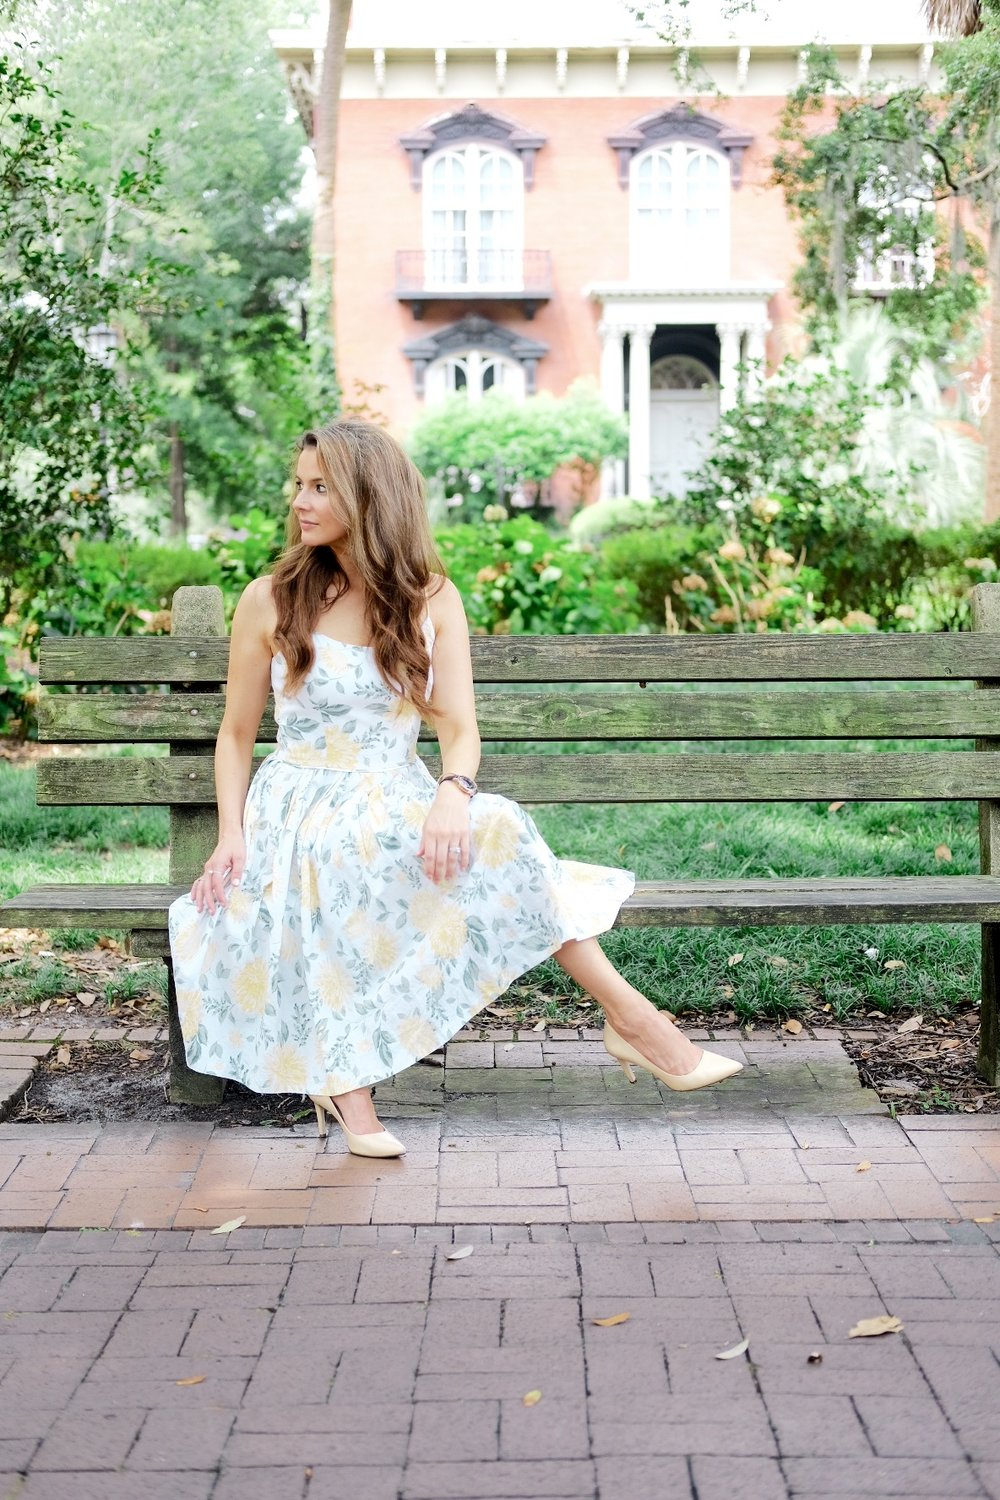 Brenna Lauren Michaels in floral Gal Meets Glam Sundress in Monterey Square Savannah Georgia